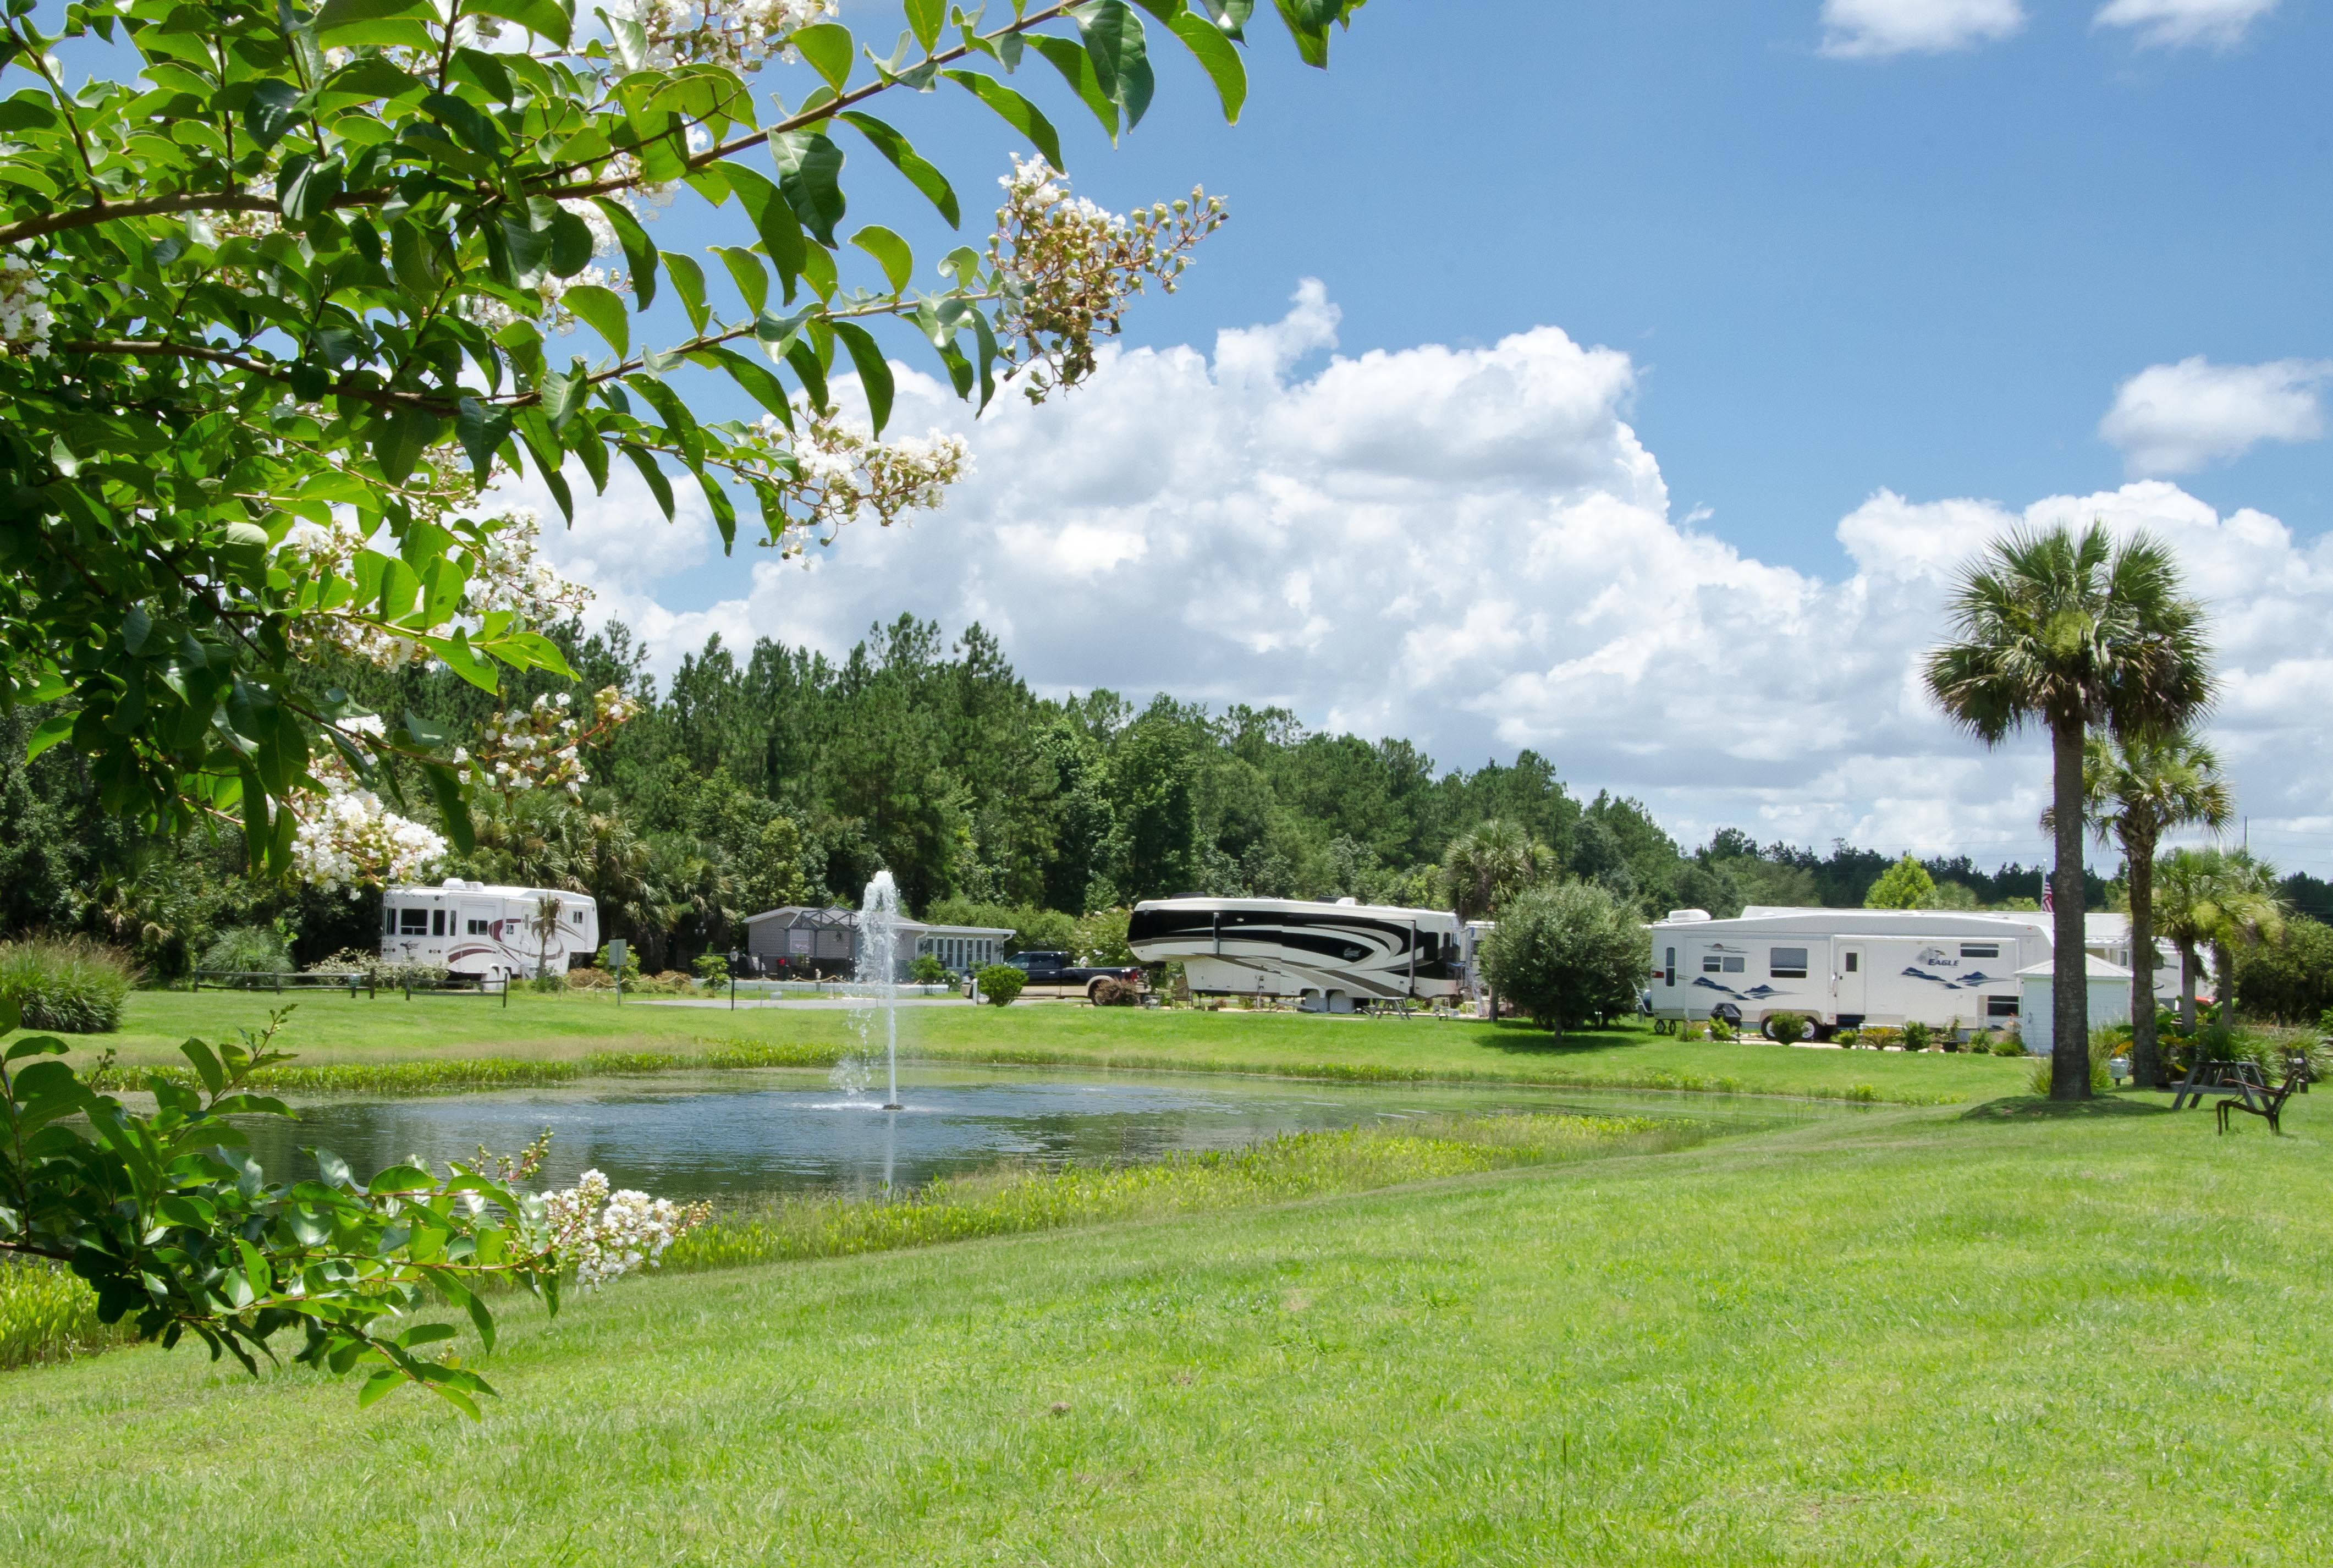 Welcome To Wilderness Rv Resorts At Silver Springs Florida Fl Florida State Parks Camping World State Parks